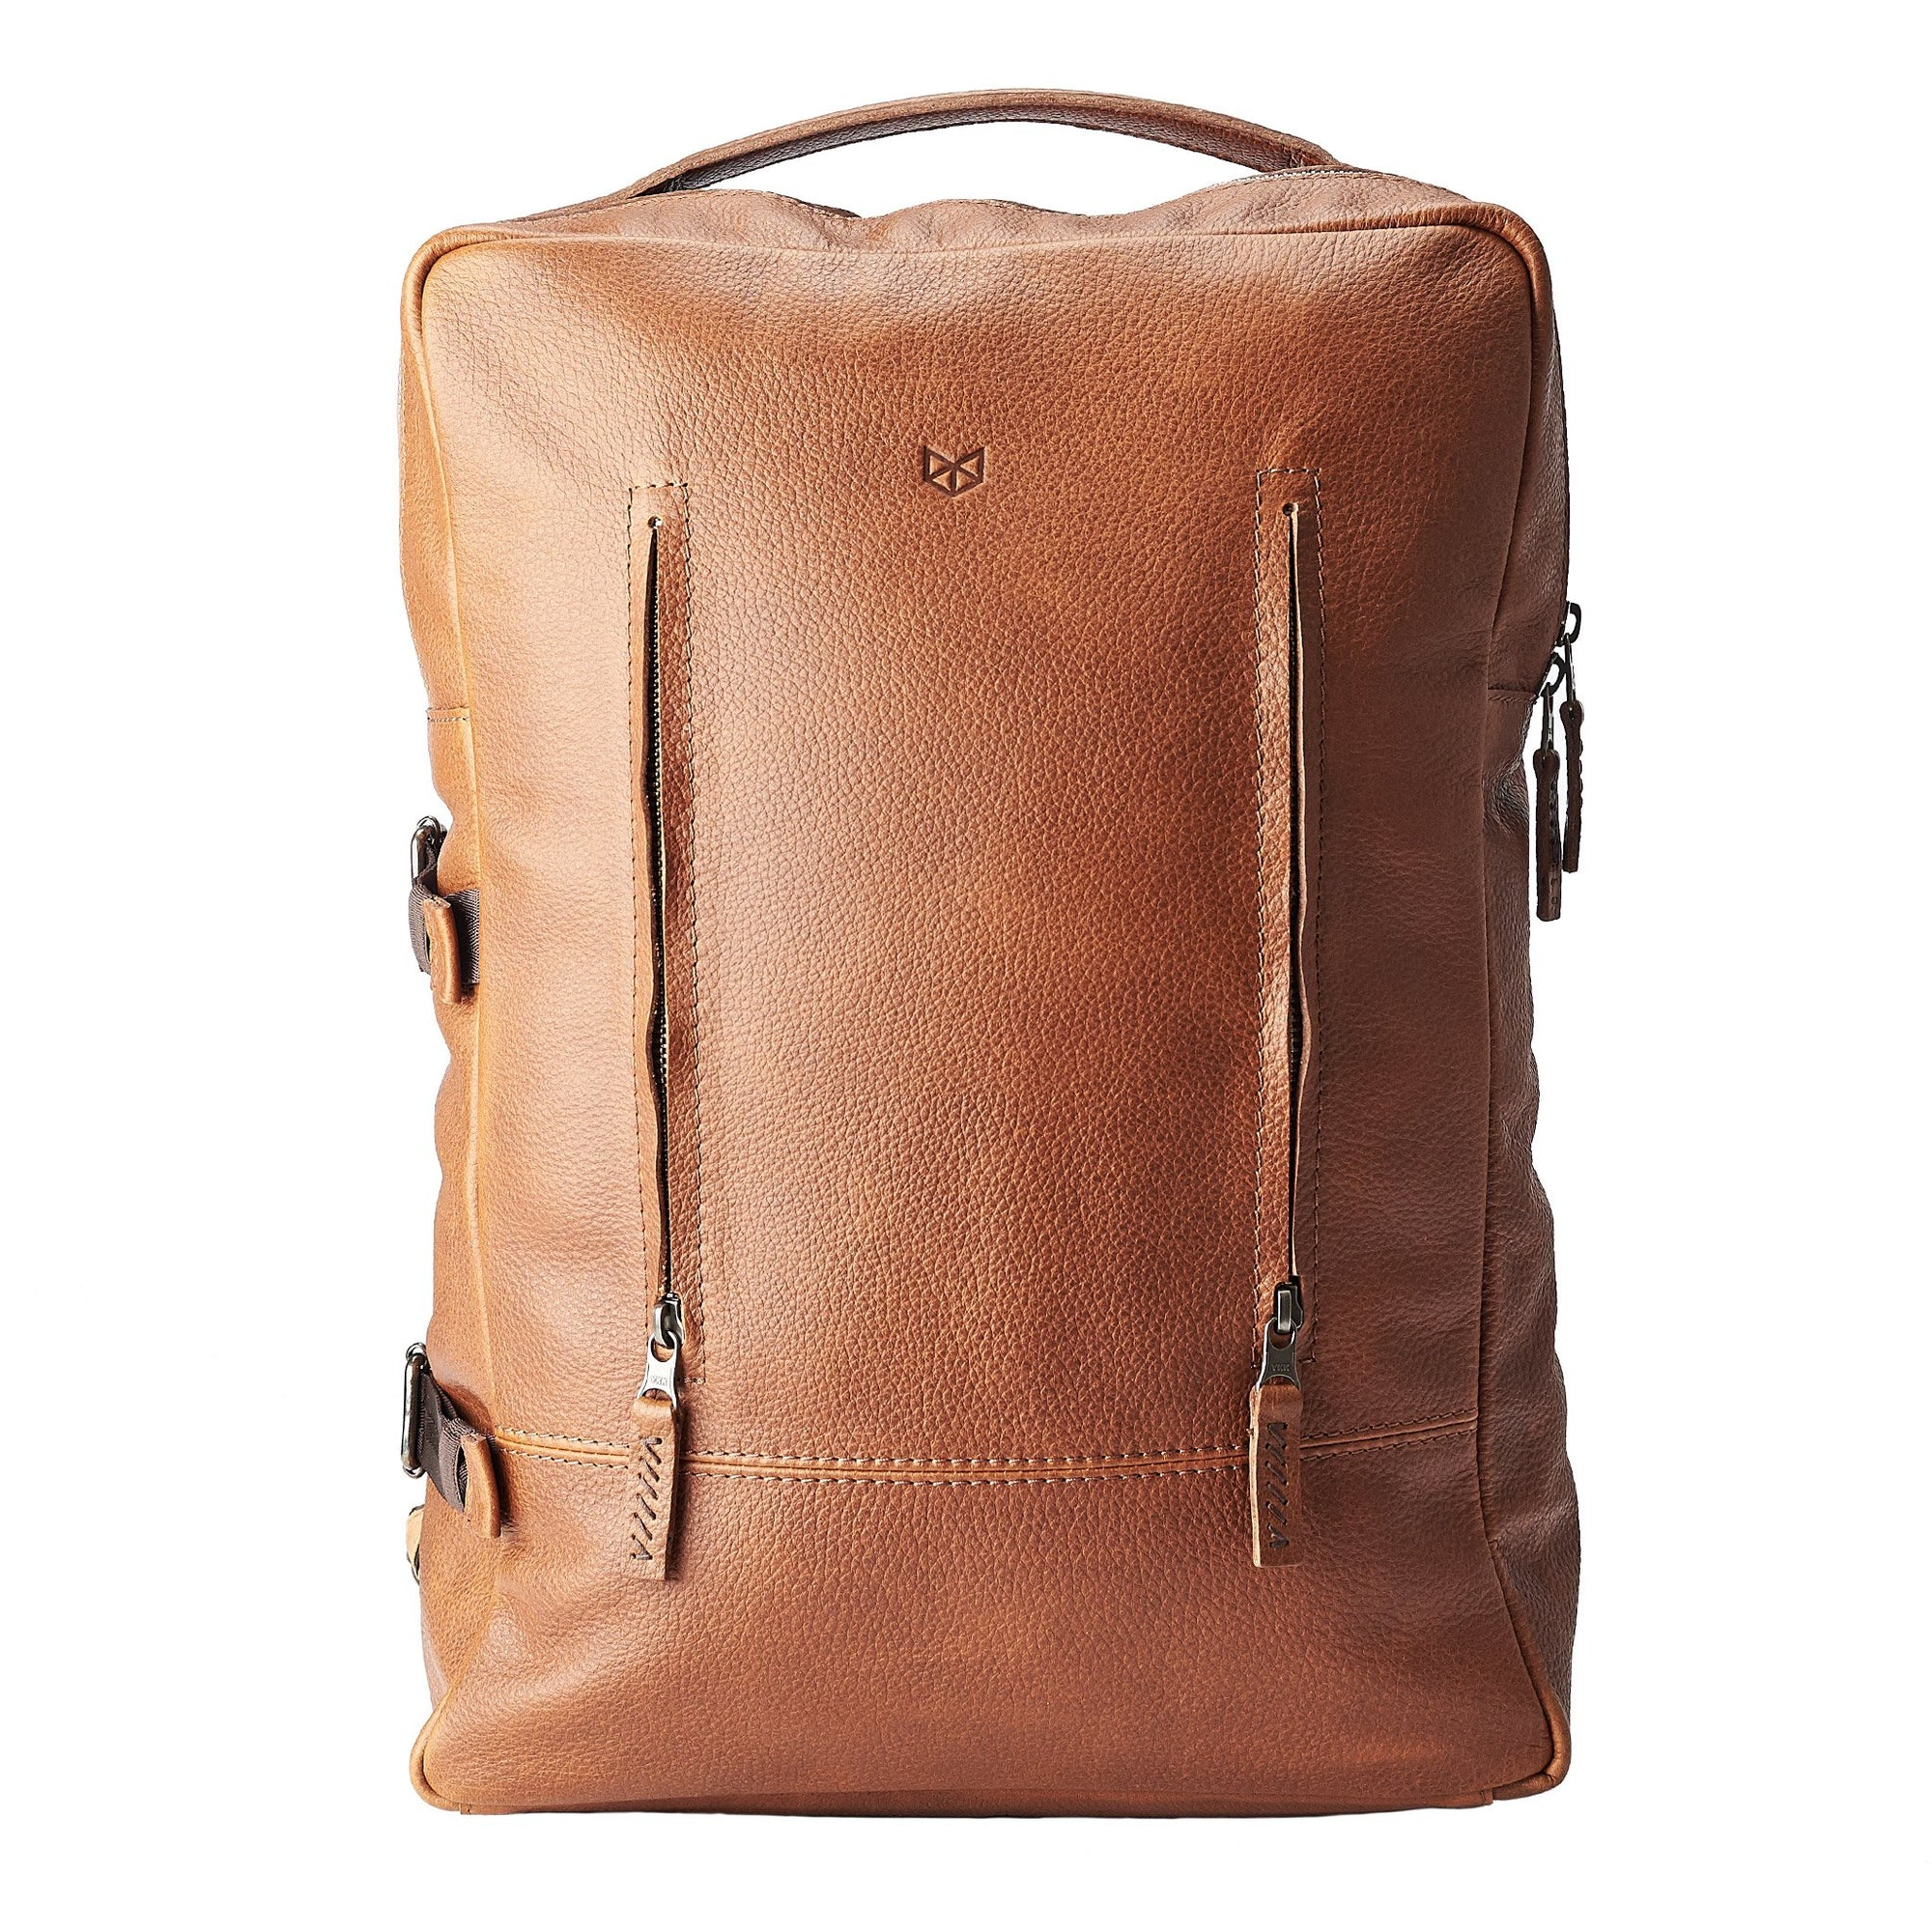 Tan leather laptop travel backpack for men by Capra Leather